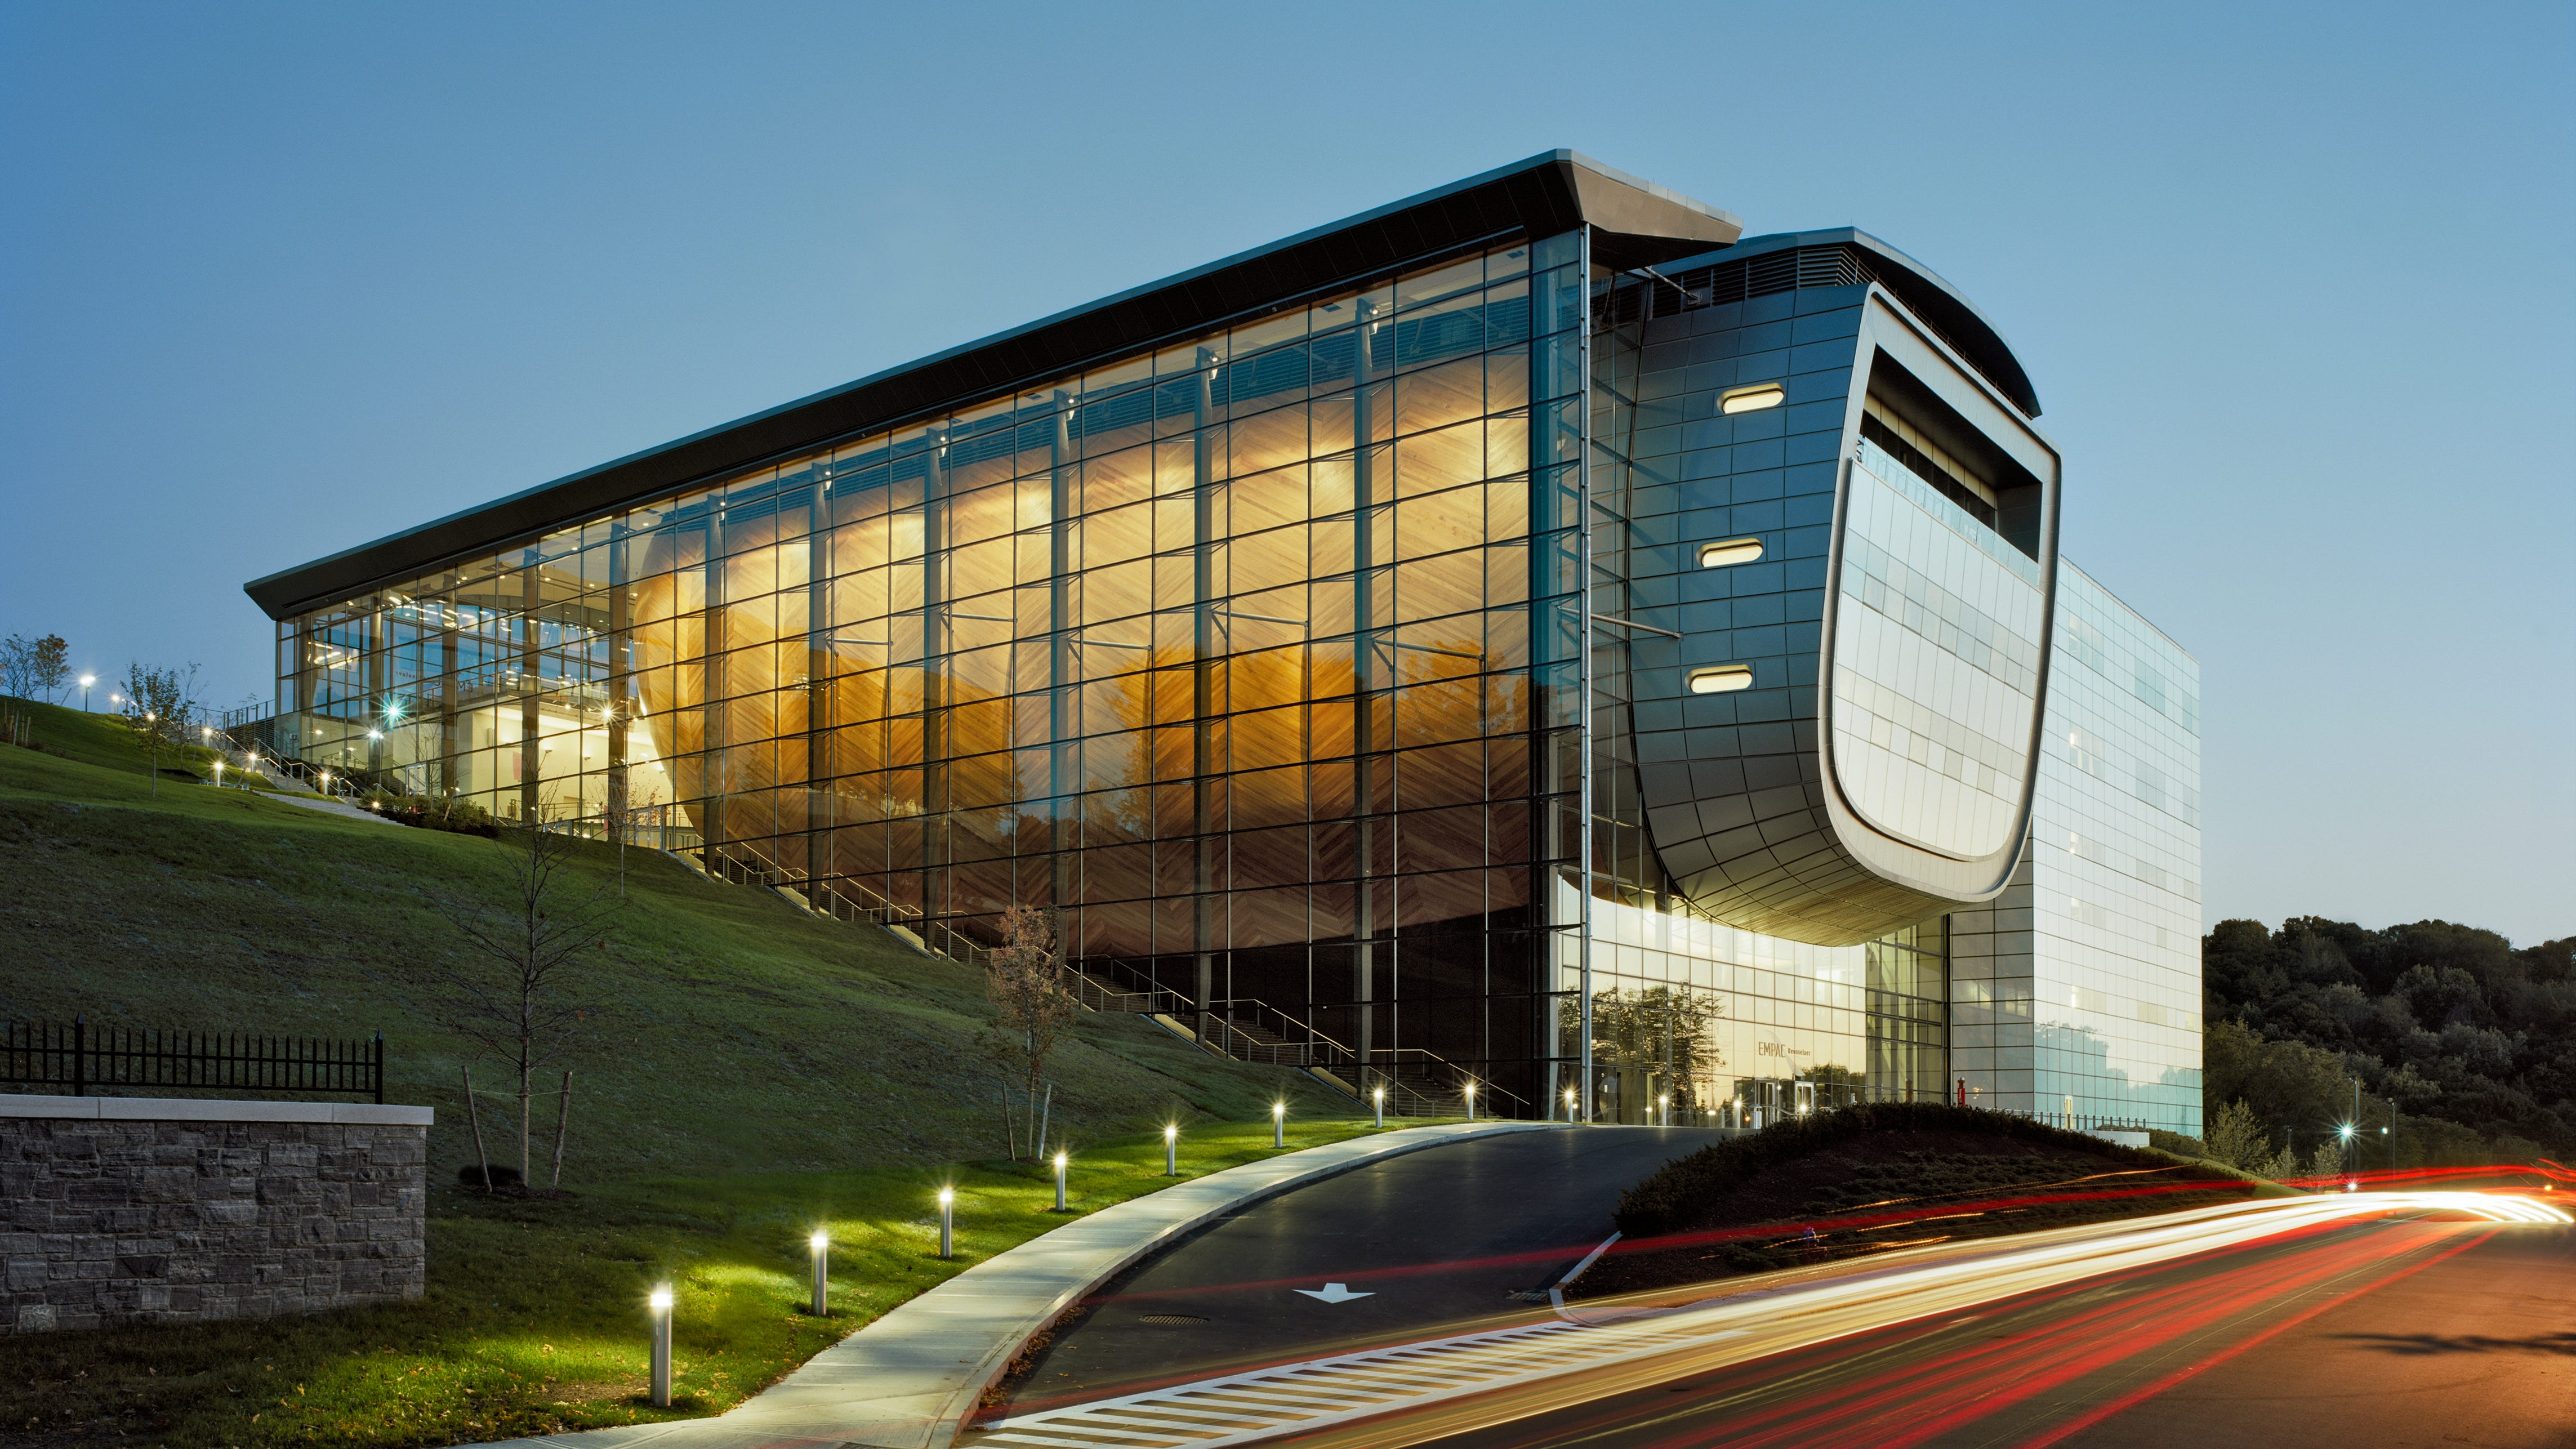 New York: At the Curtis R. Priem Experimental Media and Performing Arts Center at Rensselaer Polytechnic Institute in Troy, get your fill of the arts and sciences all in the same building.